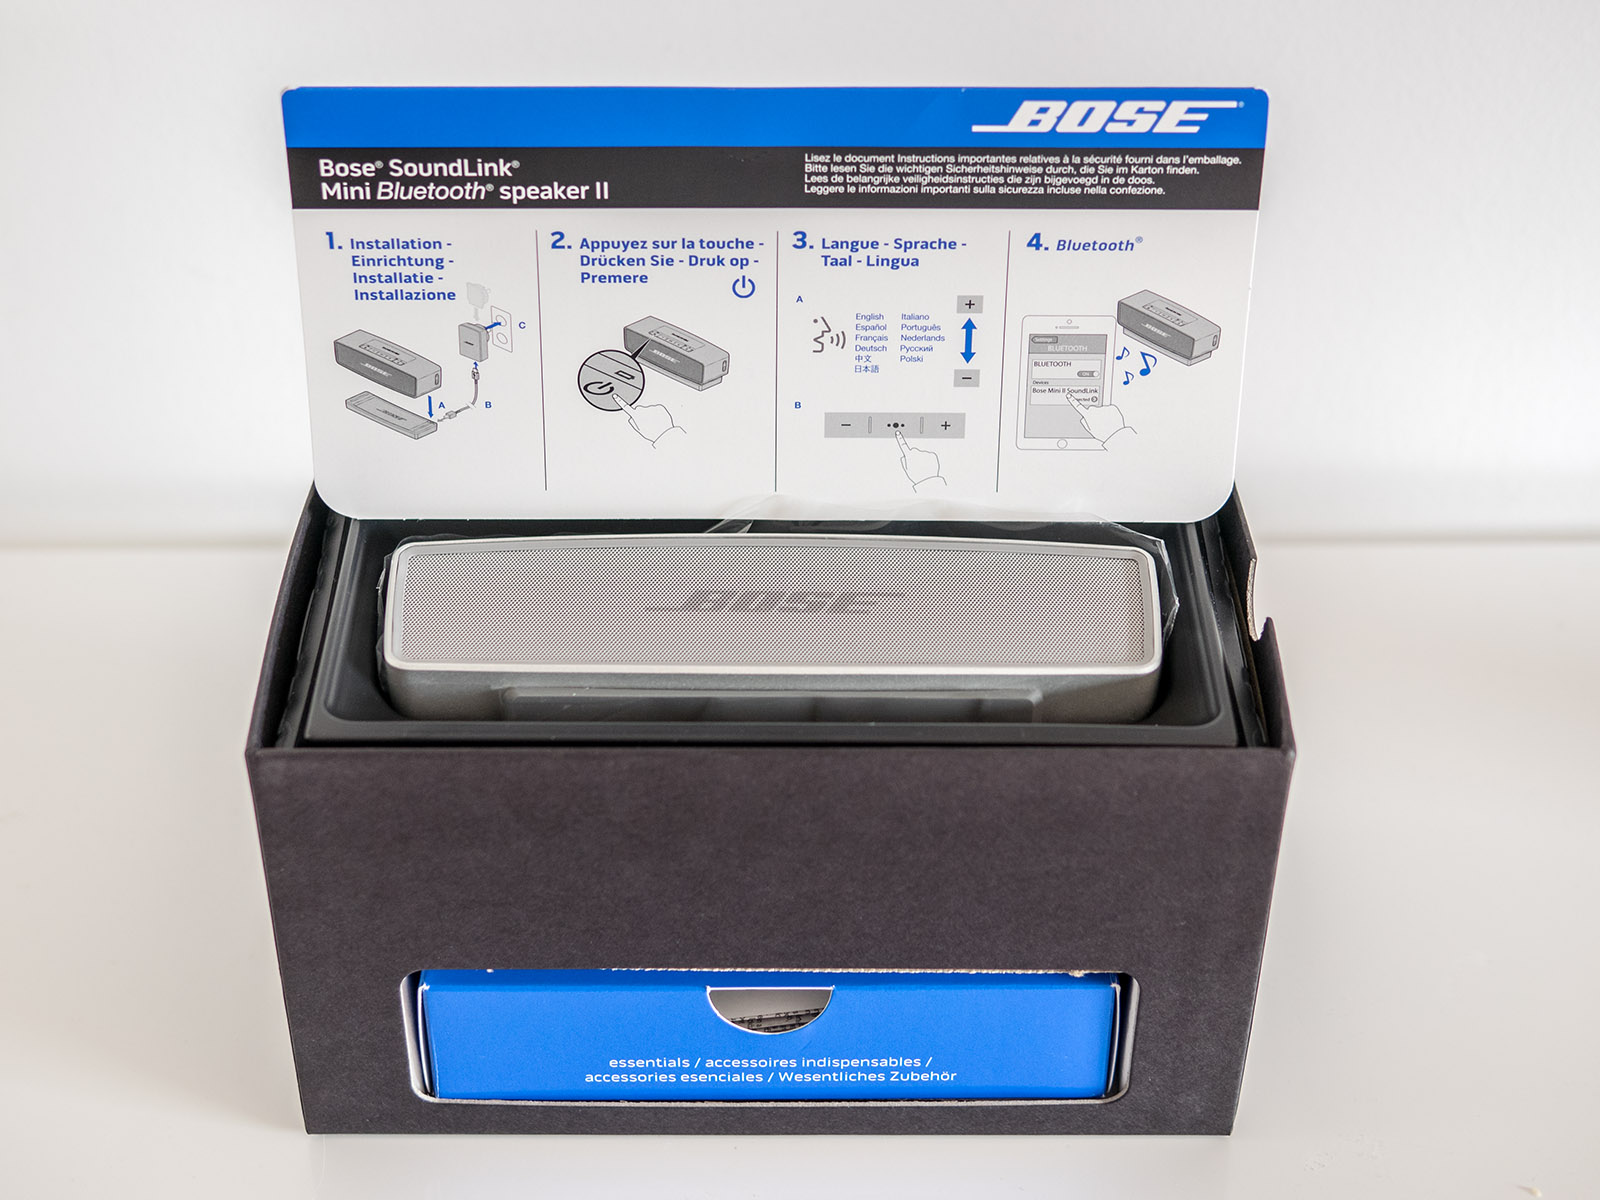 Oluvs Gadgets Review Bose Soundlink Mini Ii Lots Of Bluetooth Speaker The Comes Within A Slightly Shorter Box Than Original Had Hidden Extra Compartment At One